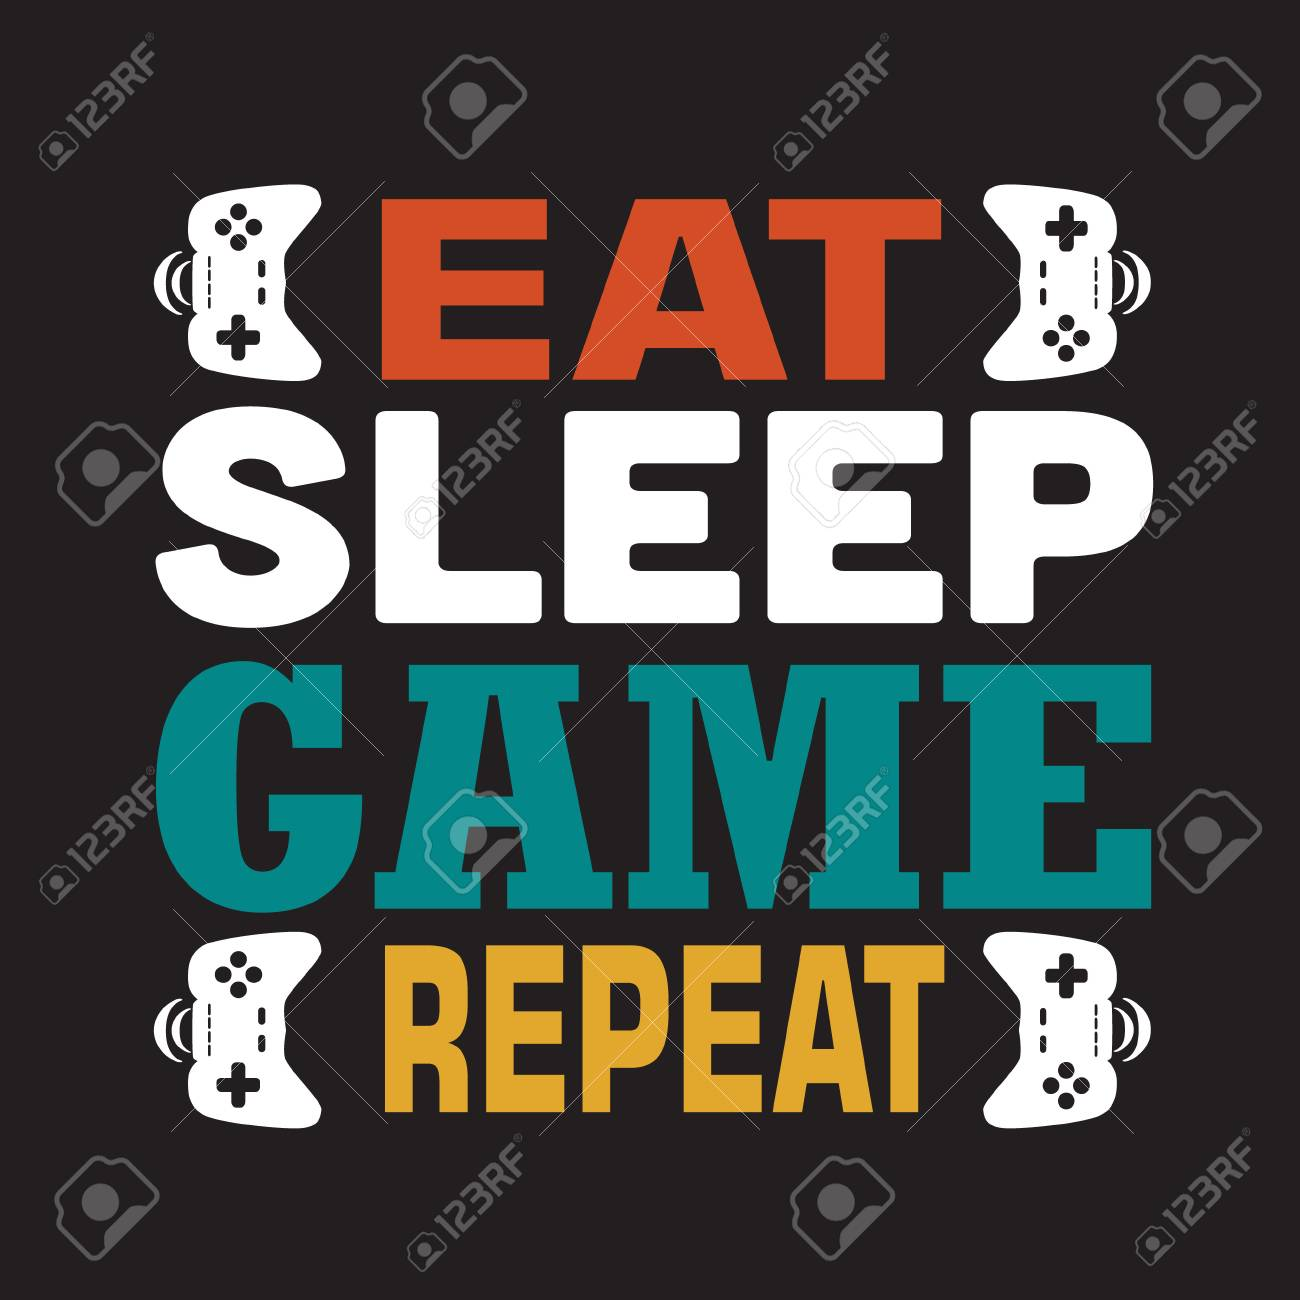 Game Quote and Saying. Eat sleep game repeat. - 122602138